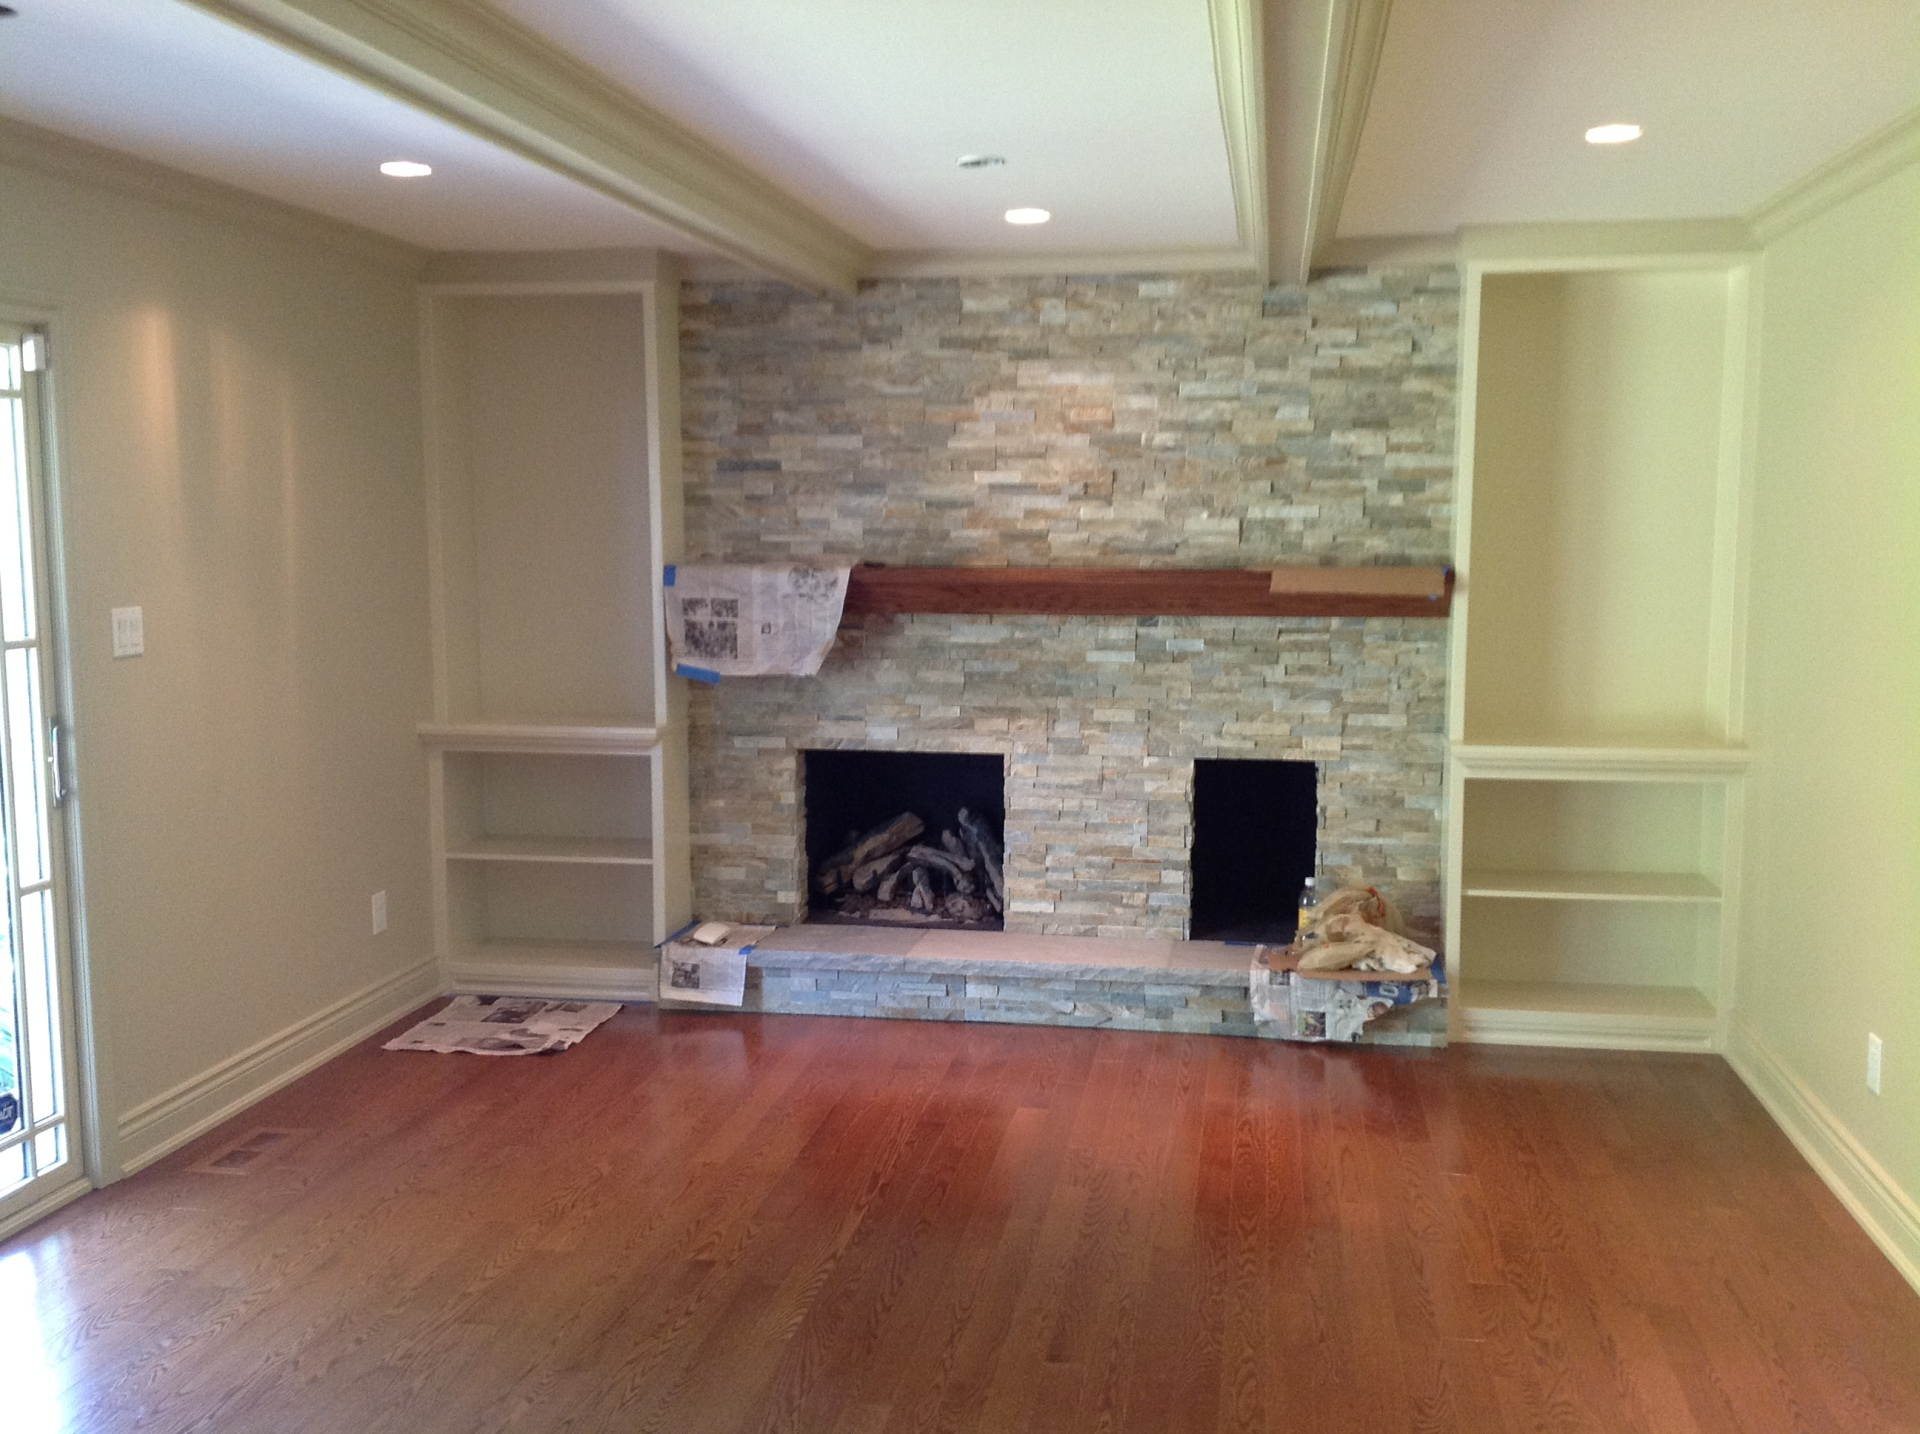 Fireplace in Natural stone